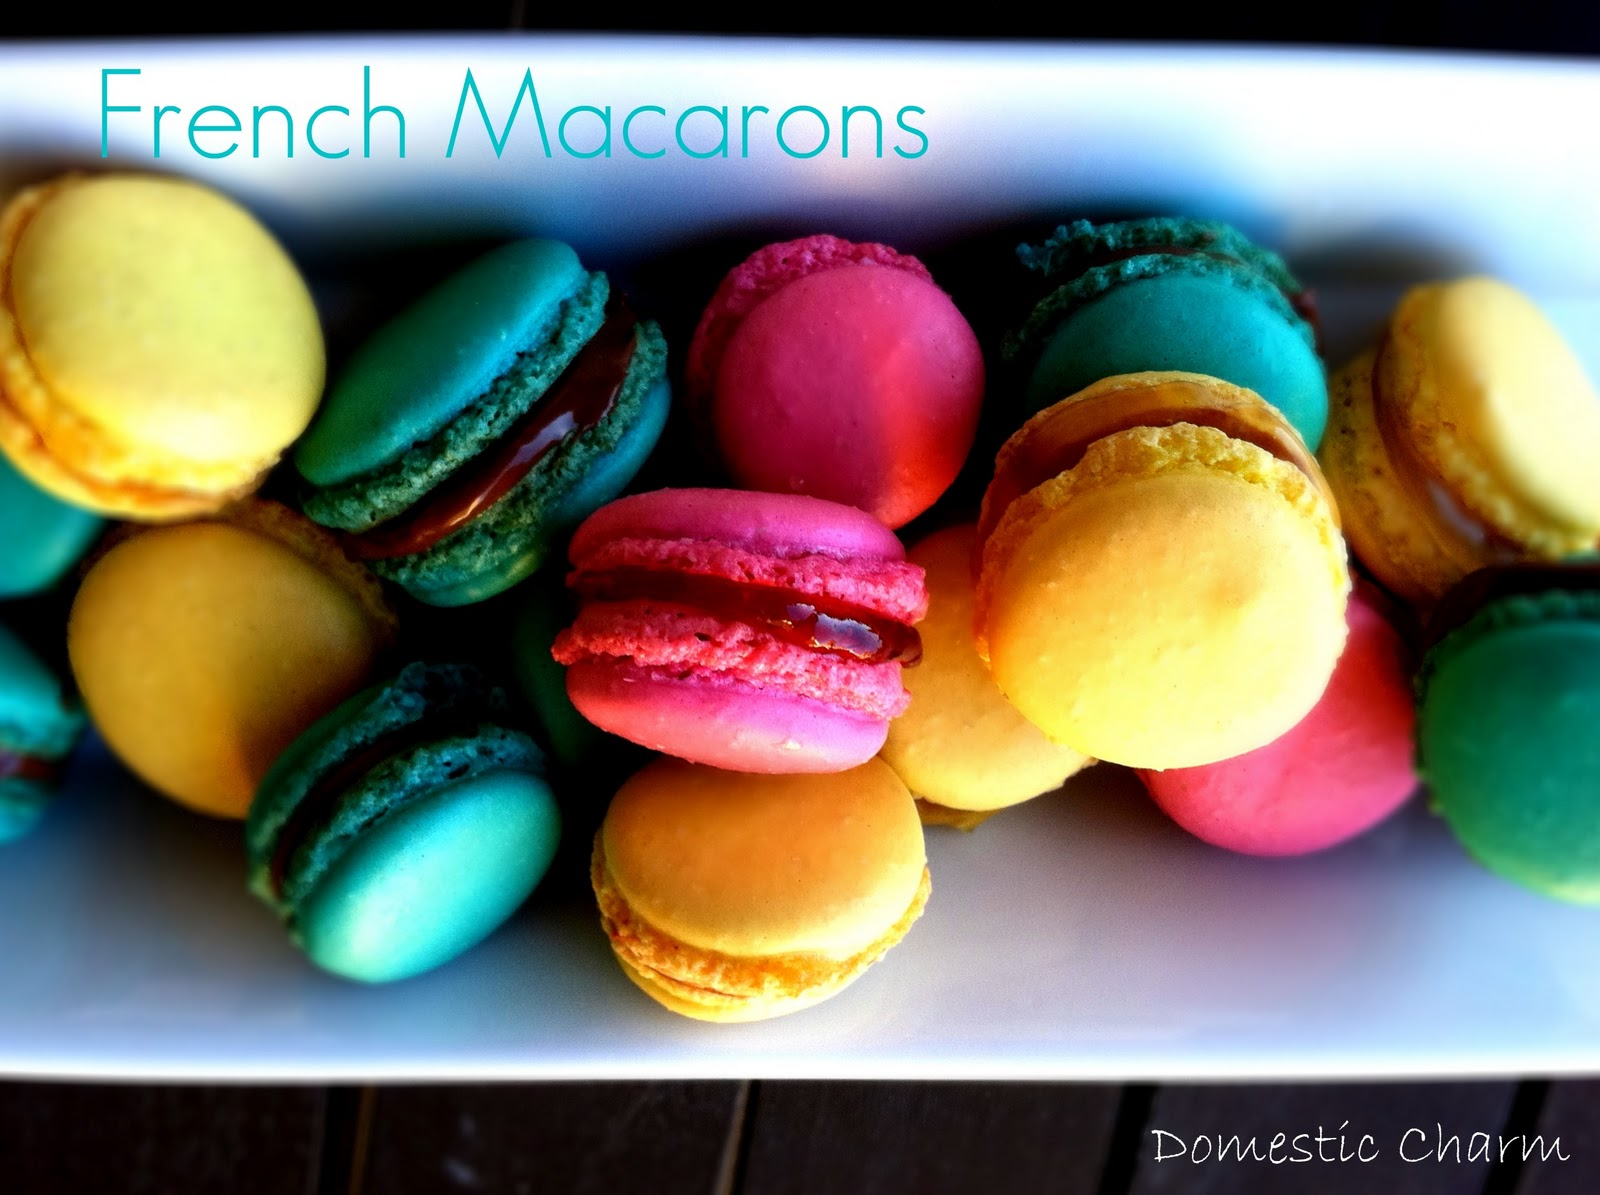 Domestic Charm: French Macarons